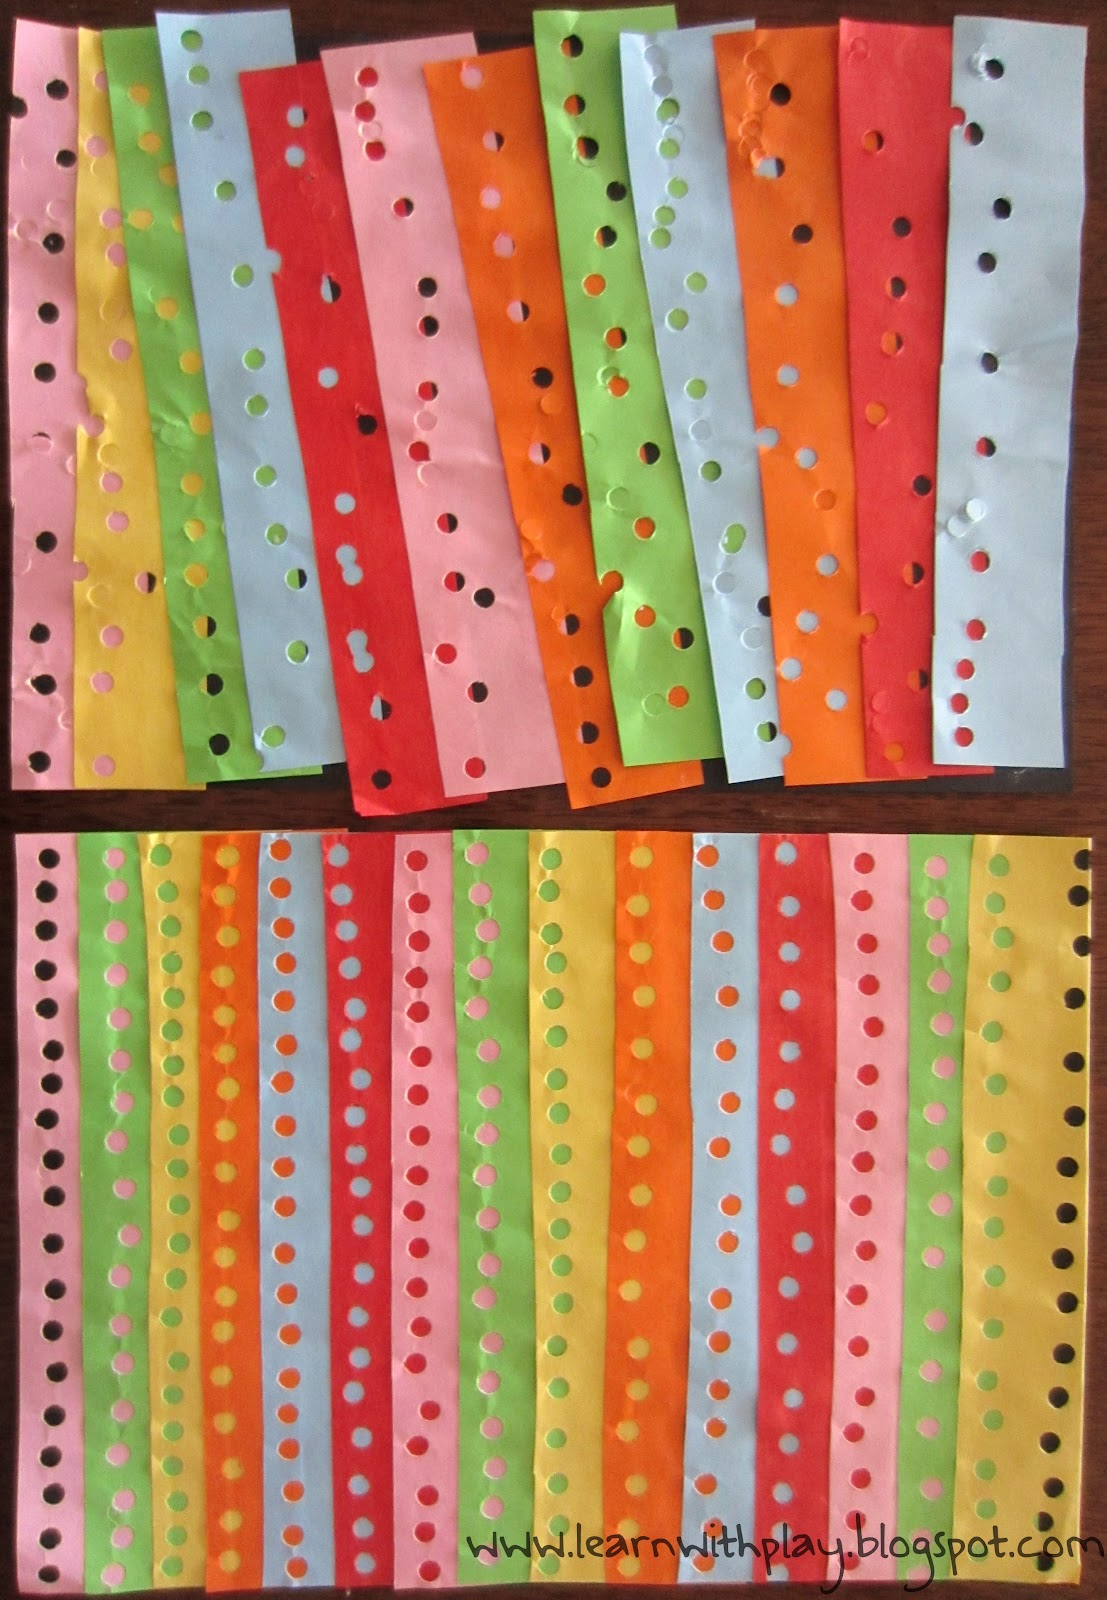 Learn With Play At Home Hole Punch Art